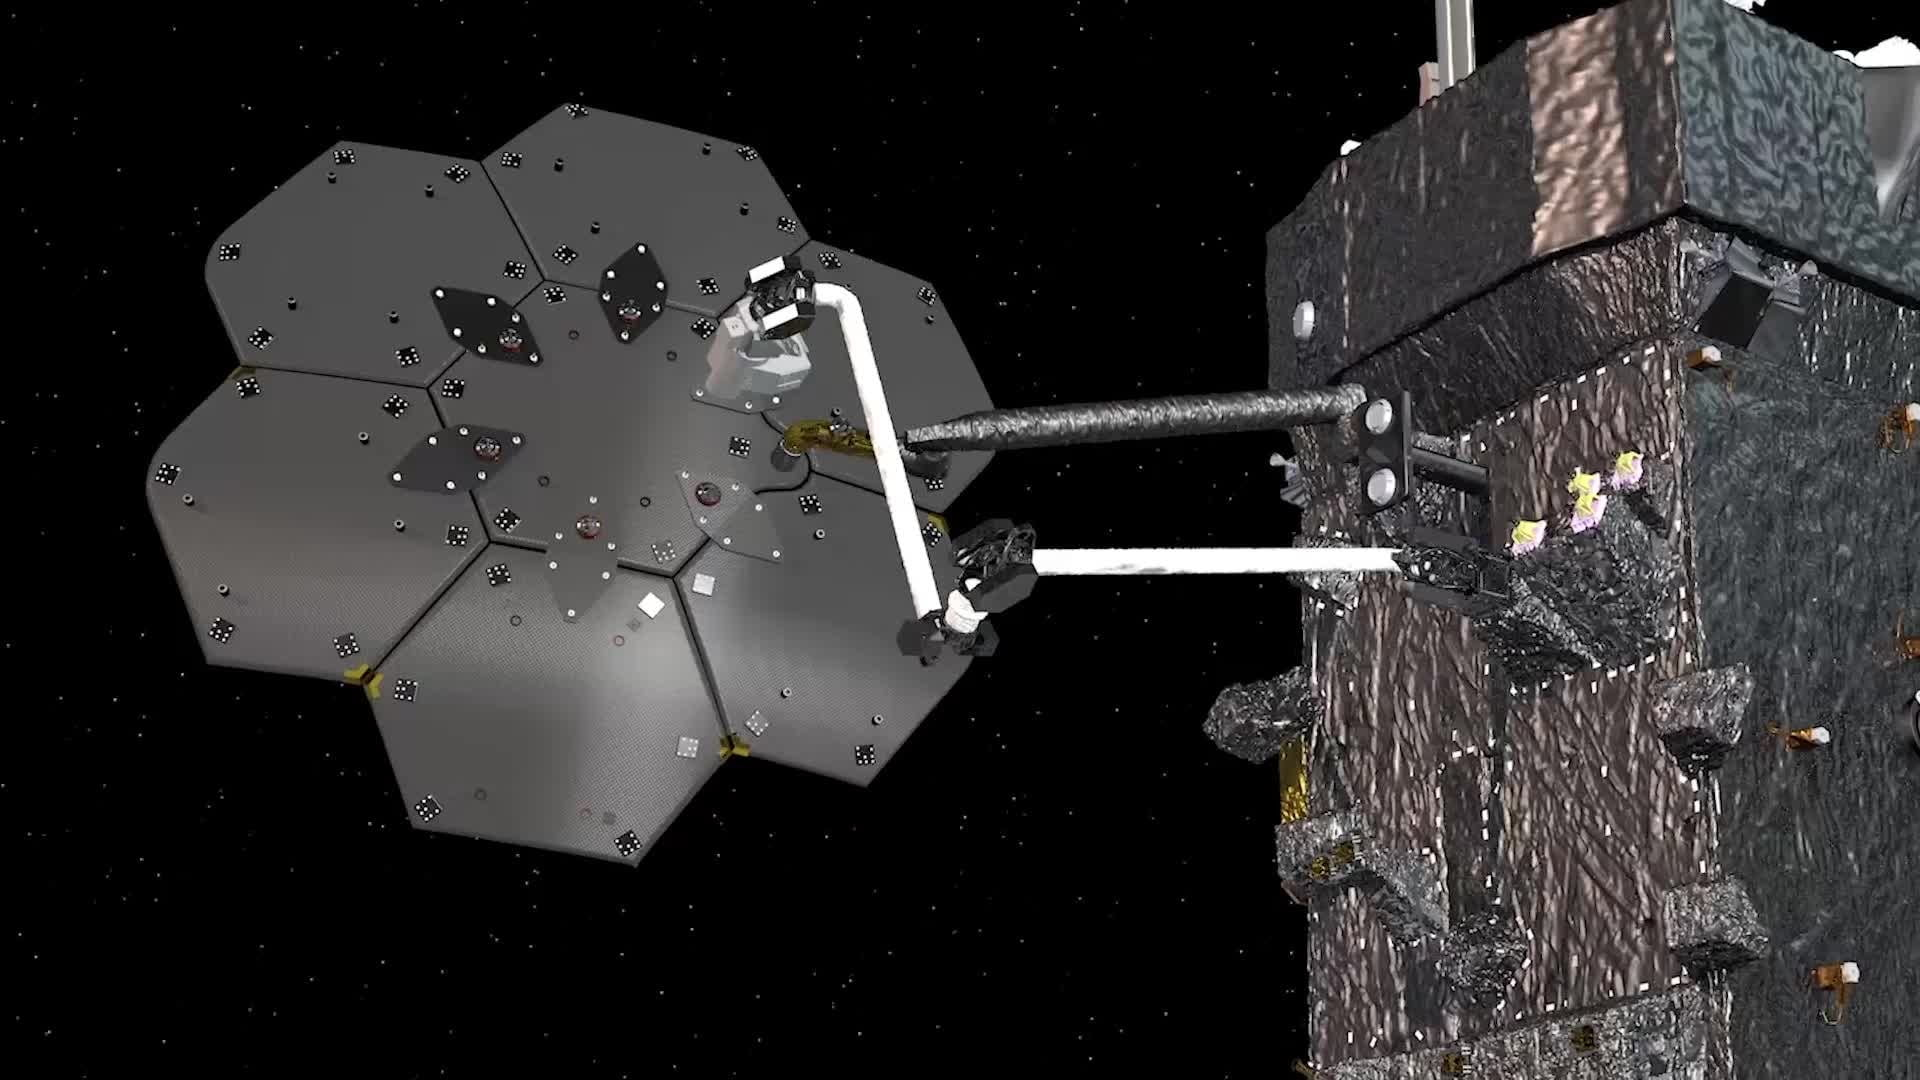 The Space Infrastructure Dexterous Robot (SPIDER) technology demonstration is slated to take place on NASA's Restore-L spacecraft. The payload will assemble a functional communications antenna and manufacture a spacecraft beam.